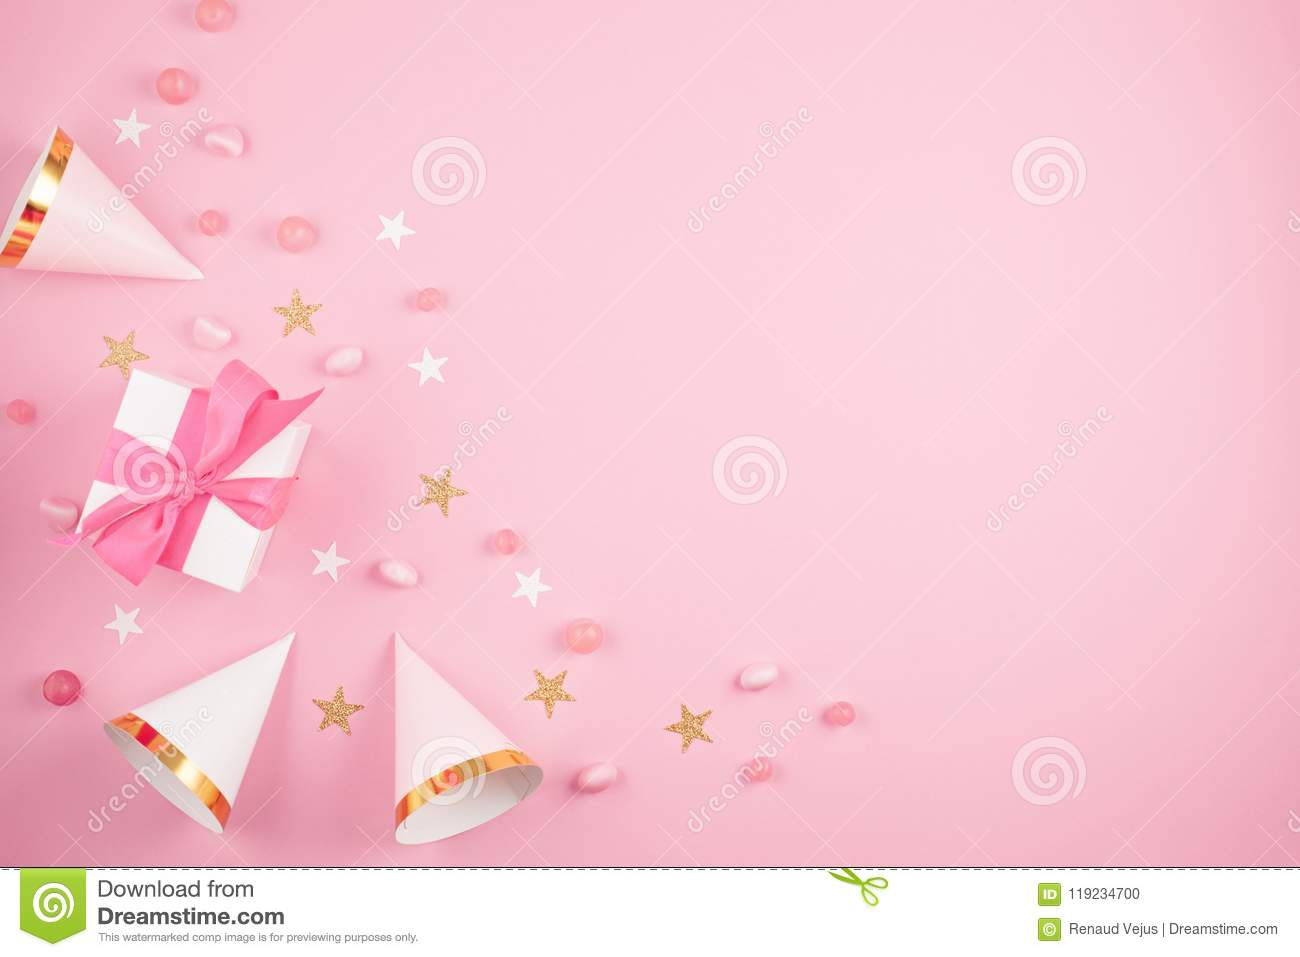 https www dreamstime com girls party accessories over pink background invitation bi girls party accessories over pink background invitation image119234700